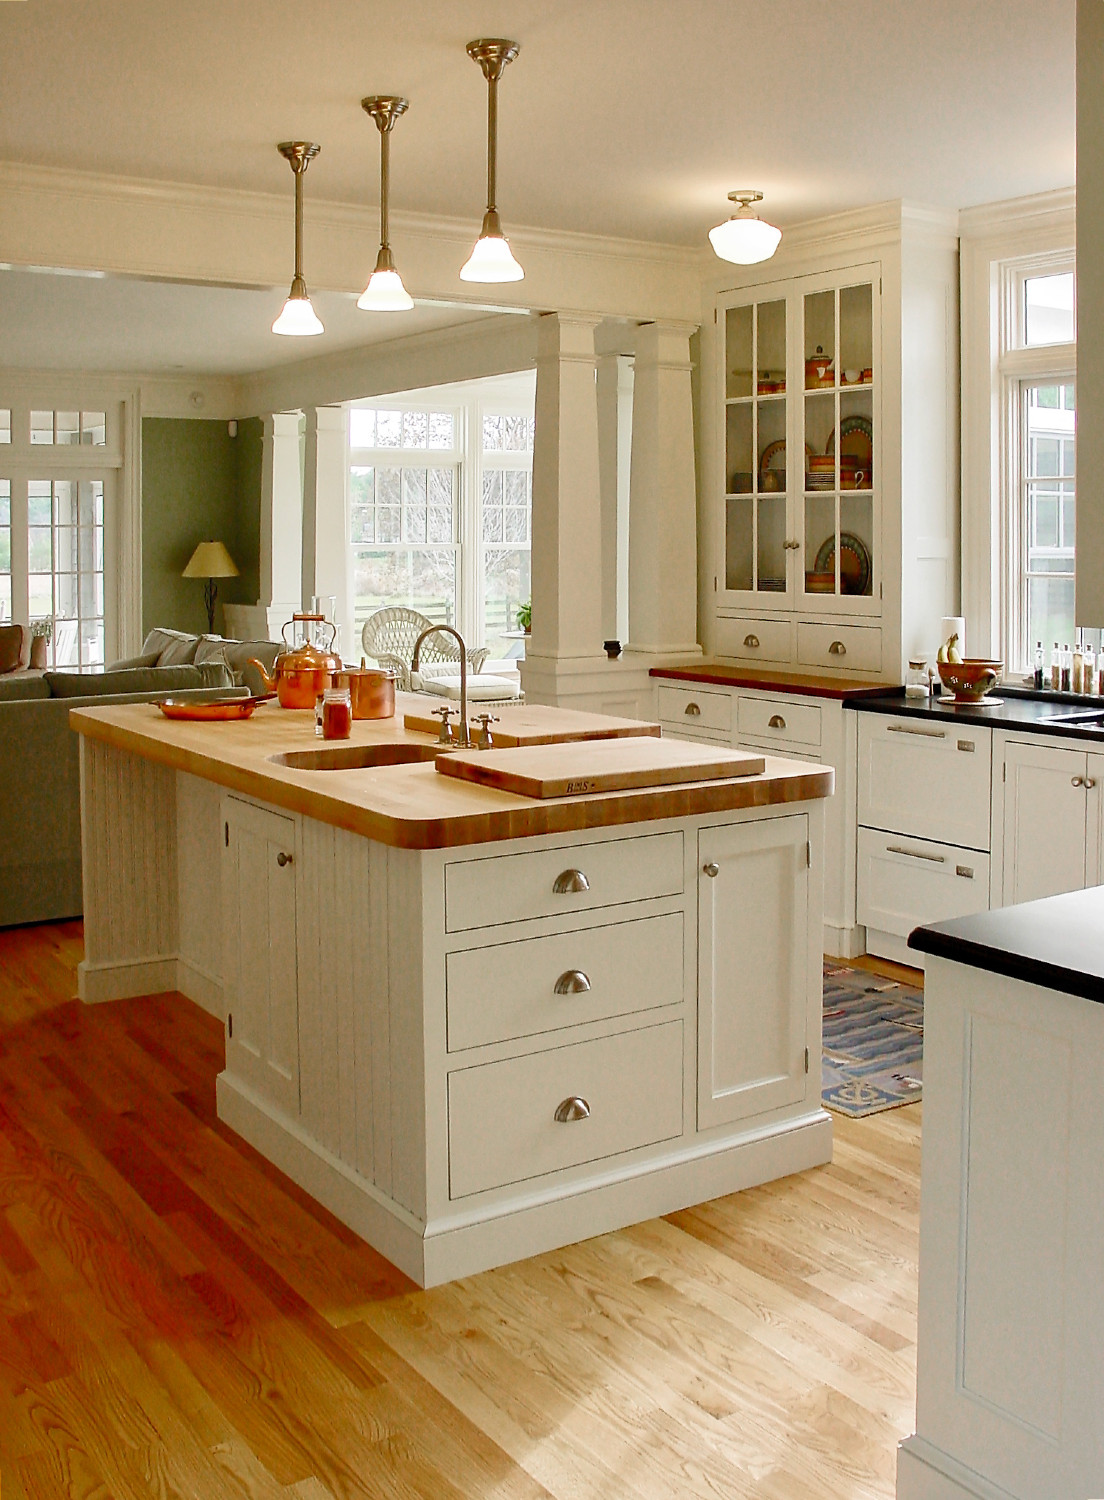 kitchen_4_1500.jpg